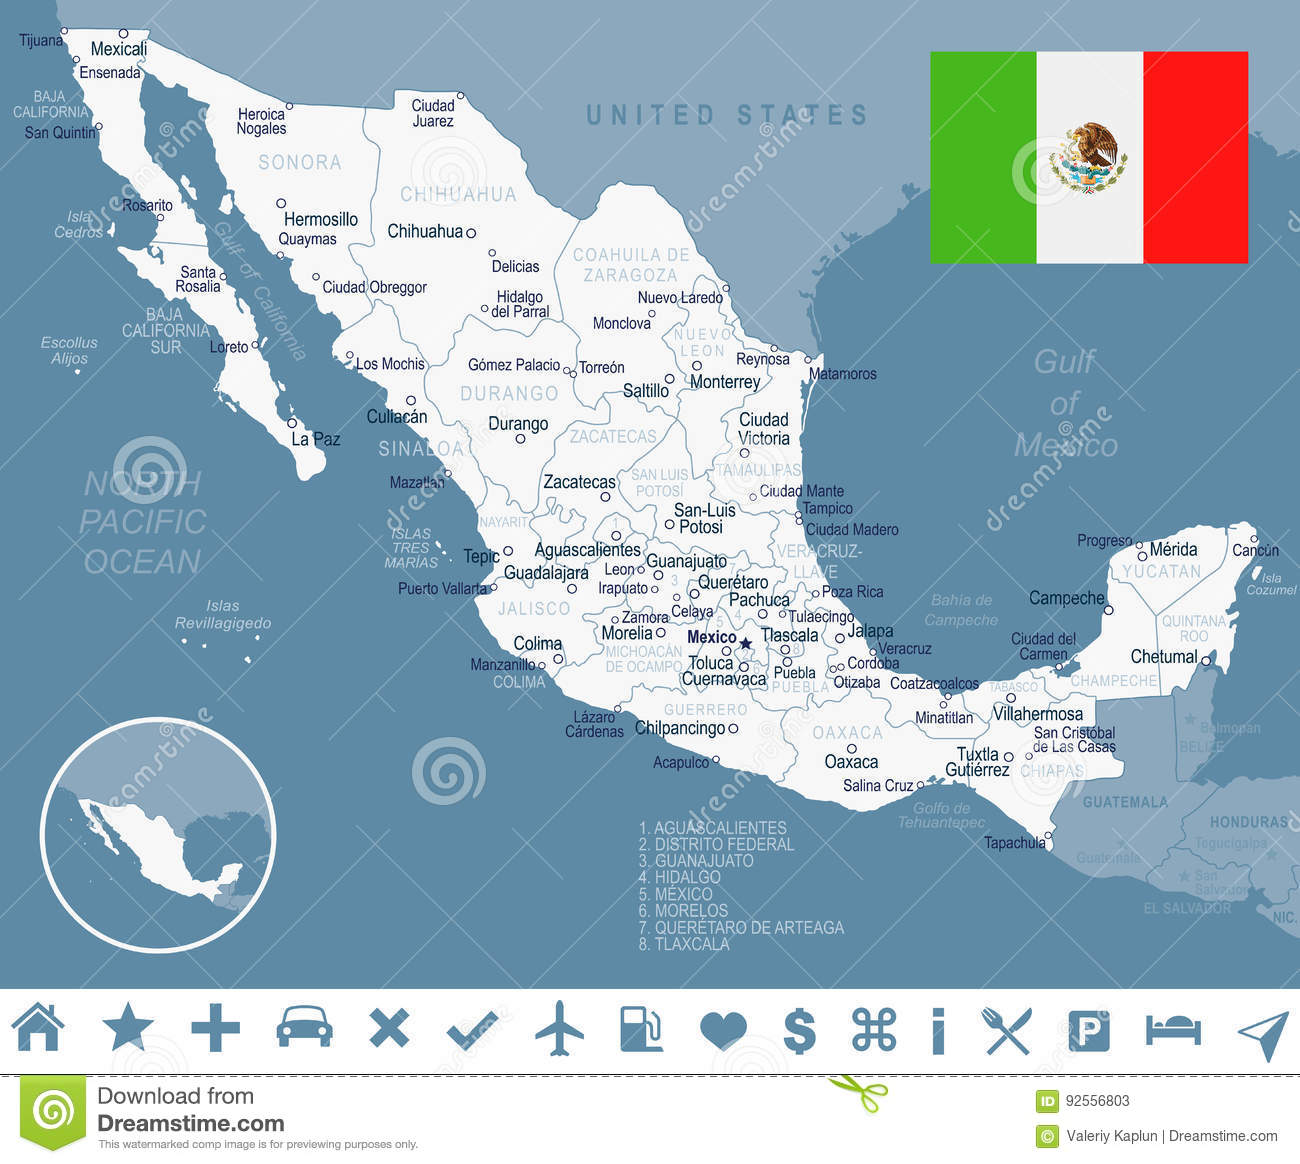 Monclova Mexico Map.Mexico Map And Flag Illustration Stock Illustration